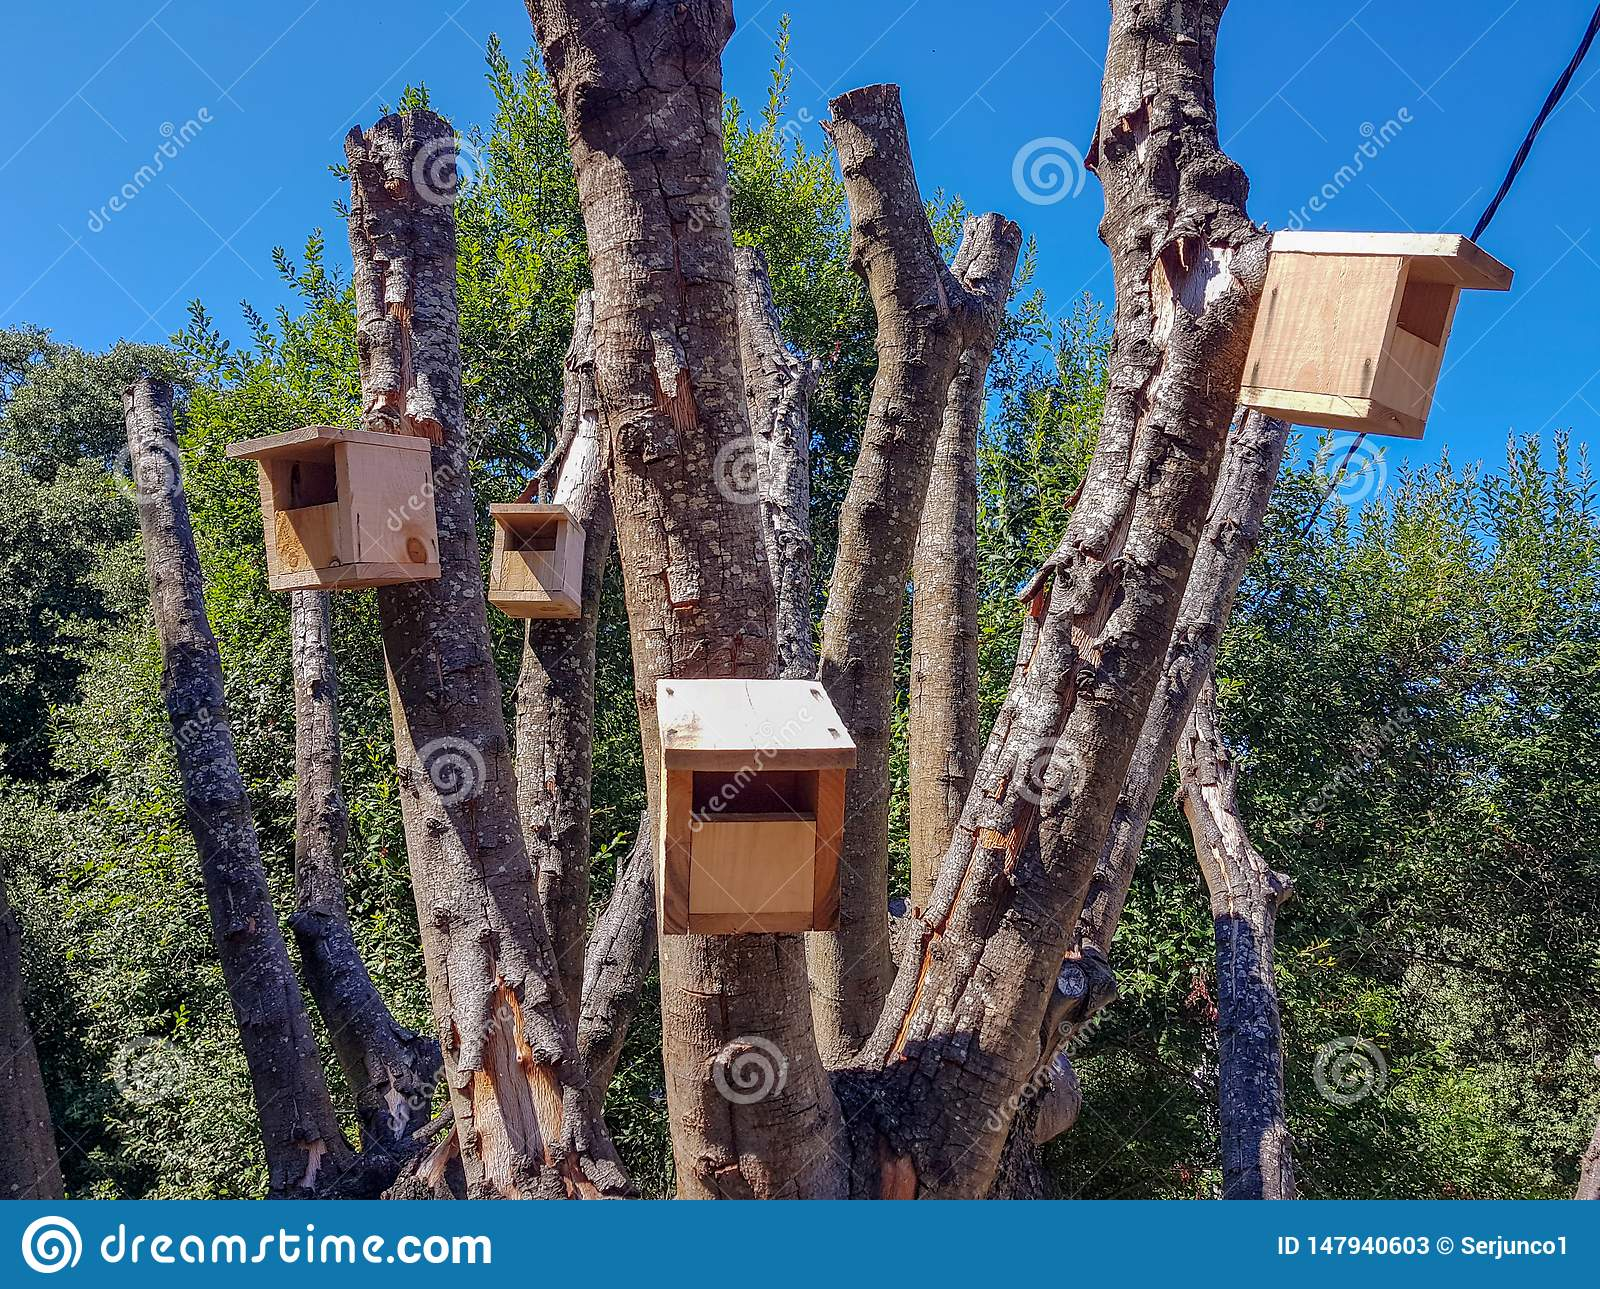 Wooden bird houses located in a newly pruned tree